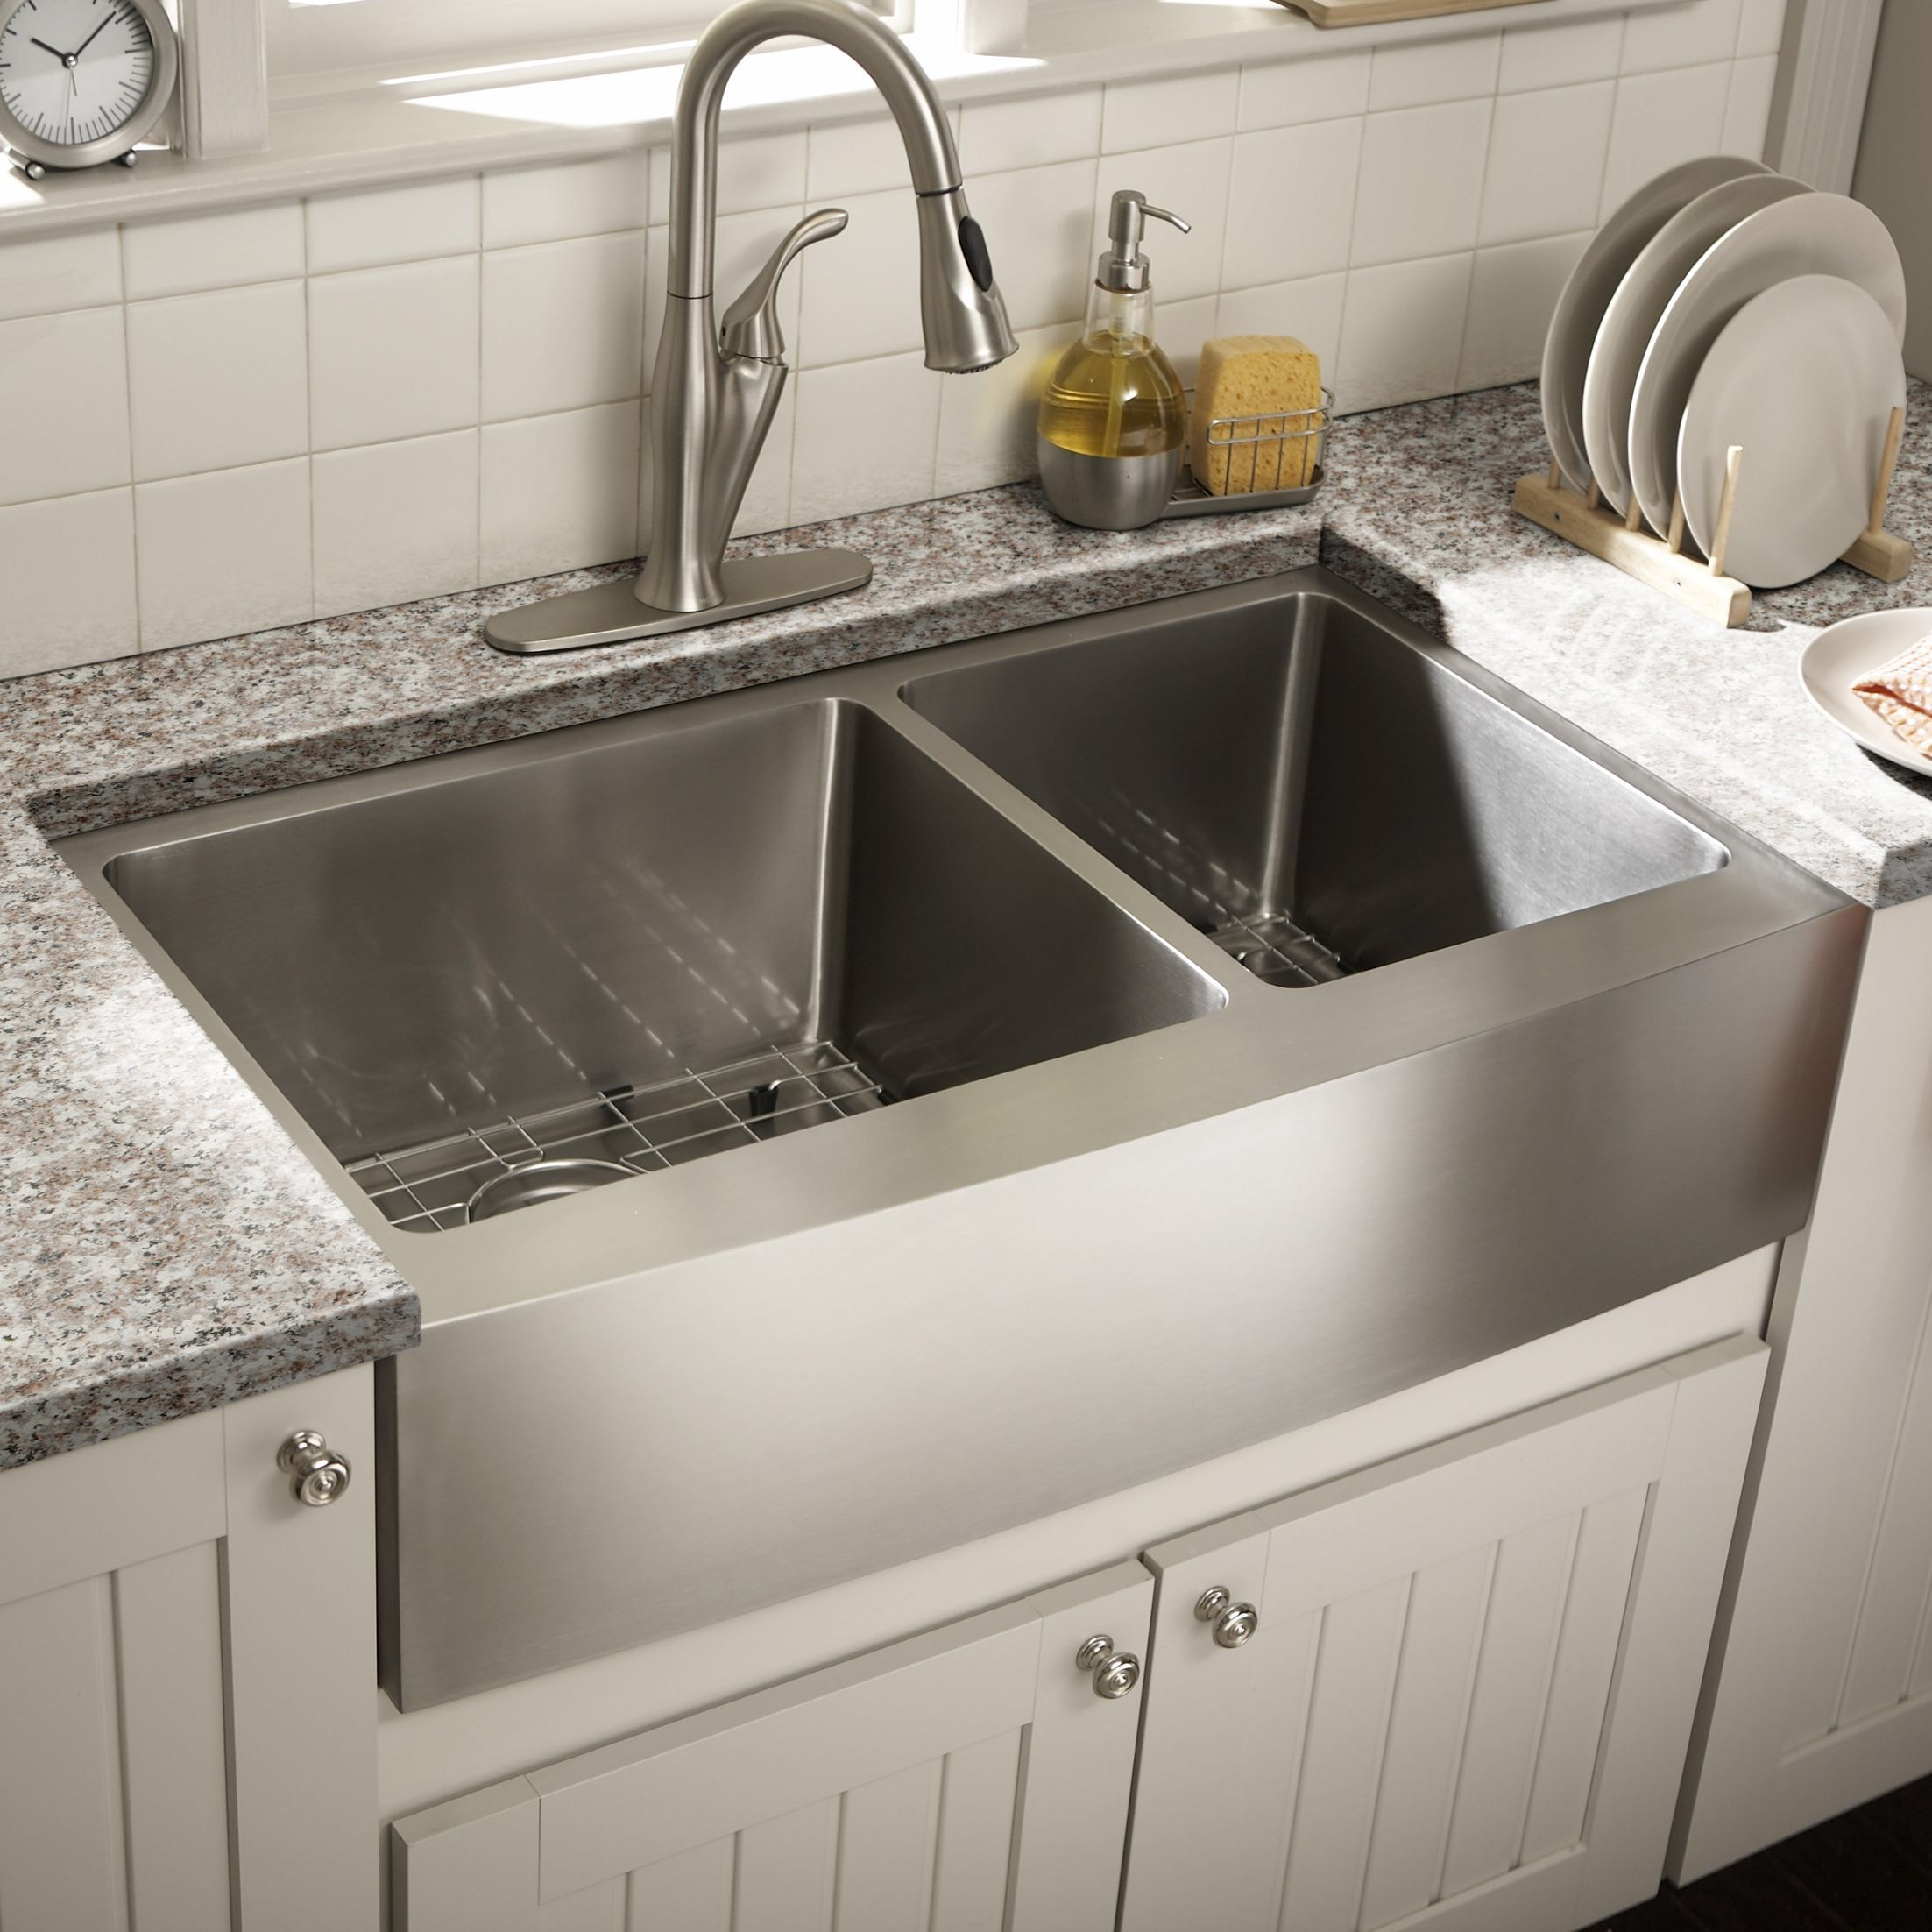 36   double bowl farmhouse kitchen sink 36   double bowl farmhouse kitchen sink   duplex   pinterest      rh   pinterest com